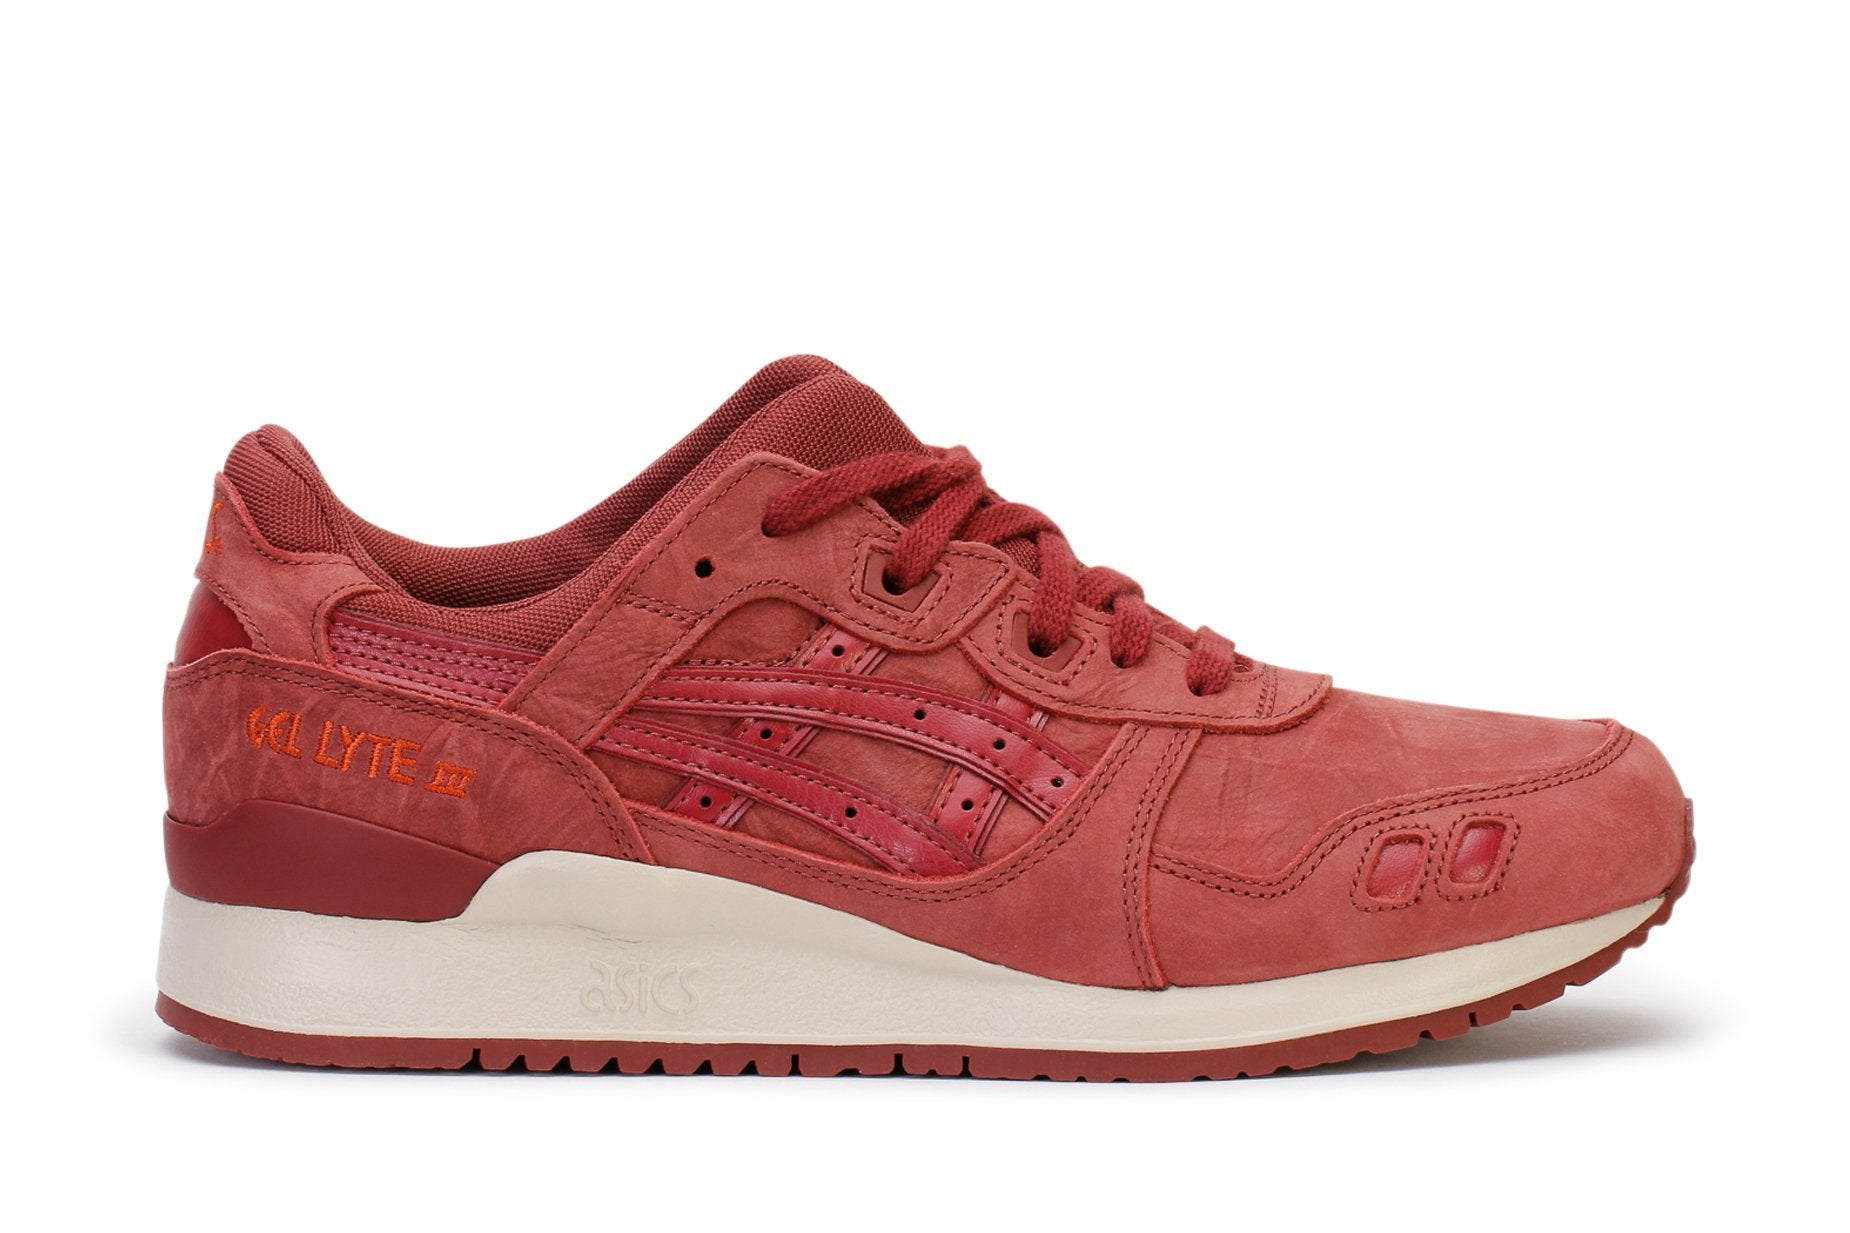 asics-tiger-mens-sneakers-gel-lyte-iii-russet-brown-russet-brown-hl7v3-2626-main